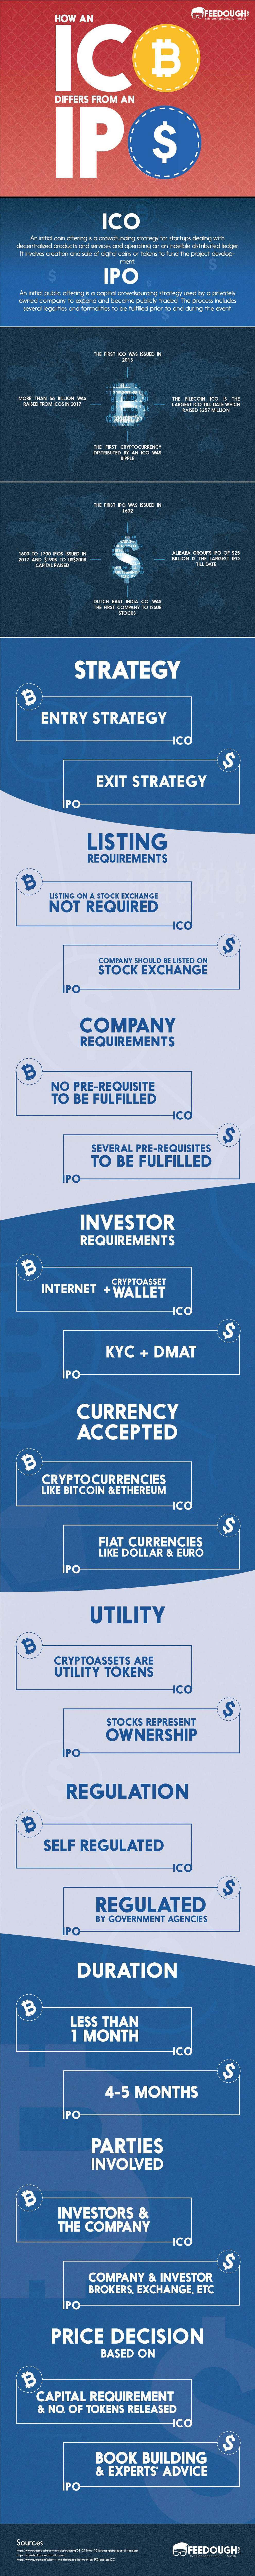 Initial Coin Offering (ICO) vs. Initial Public Offering (IPO)